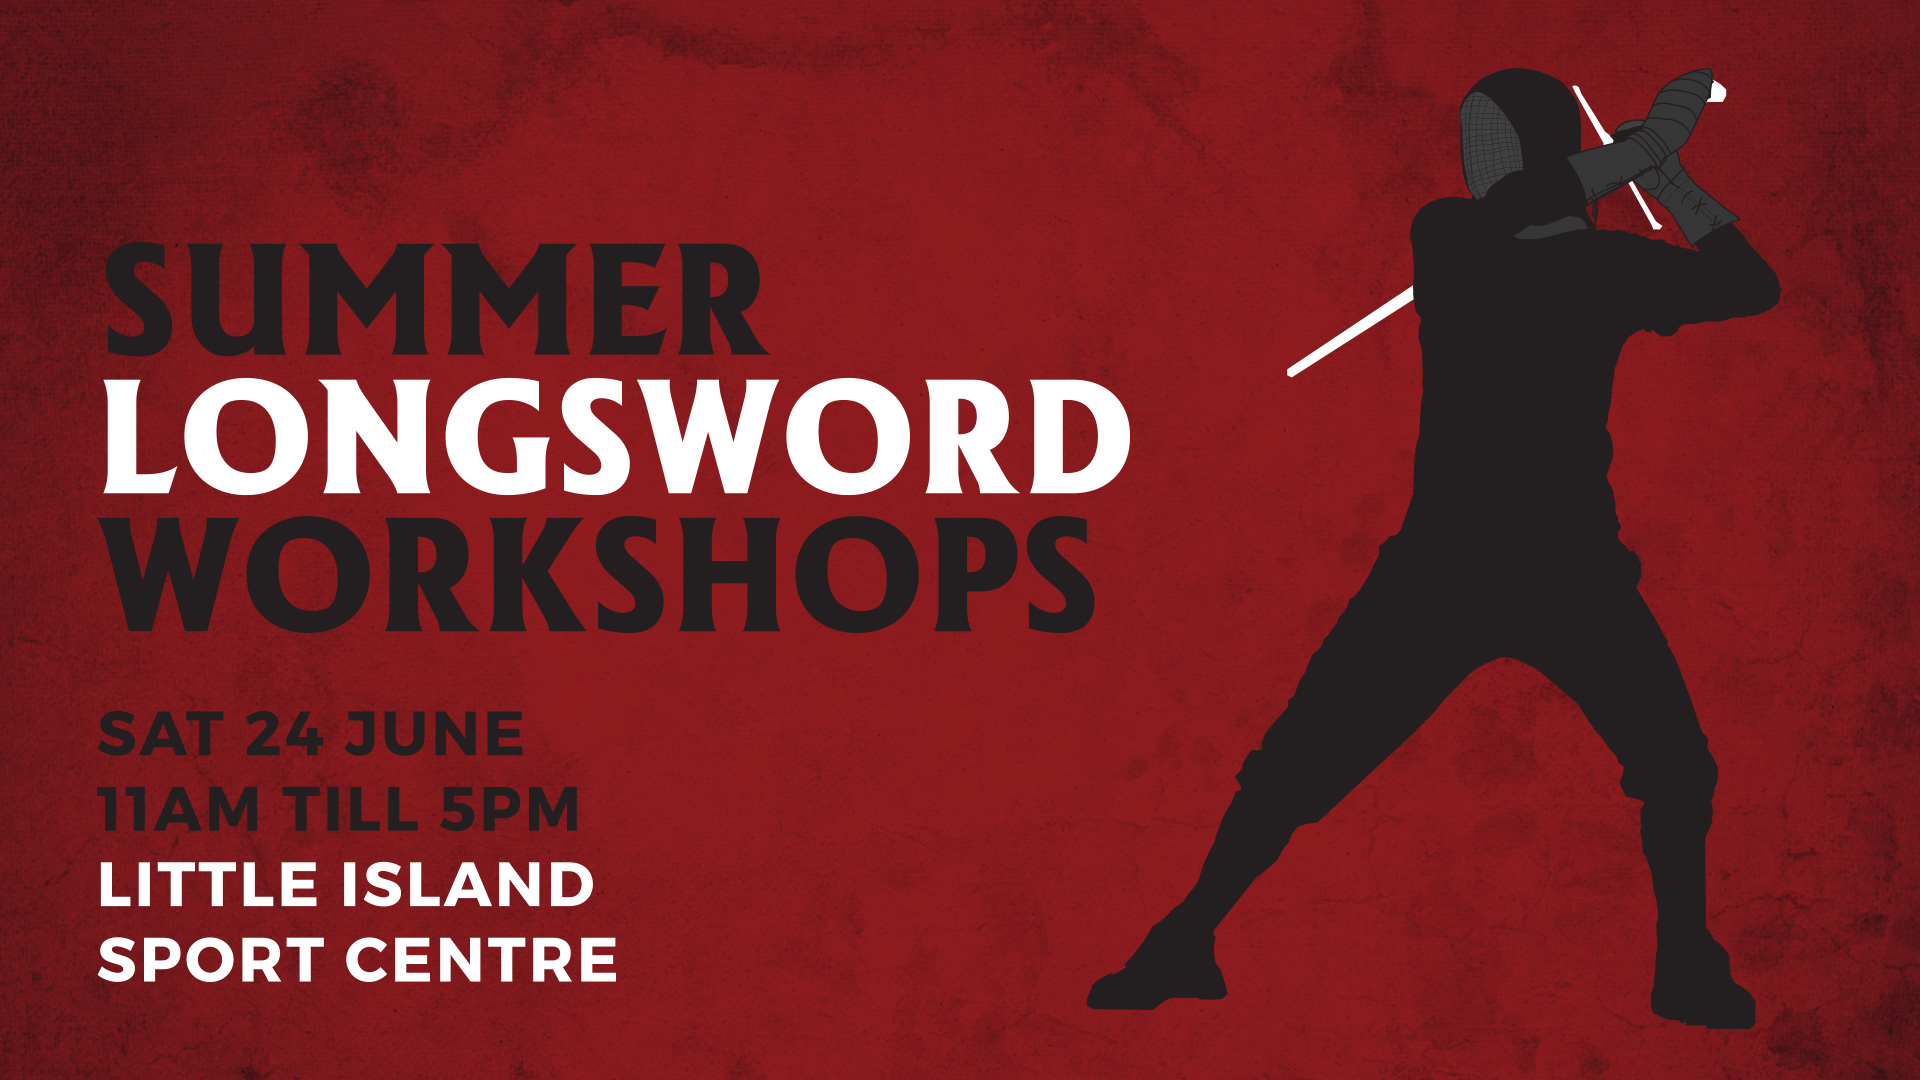 German Longsword Workshops this Saturday